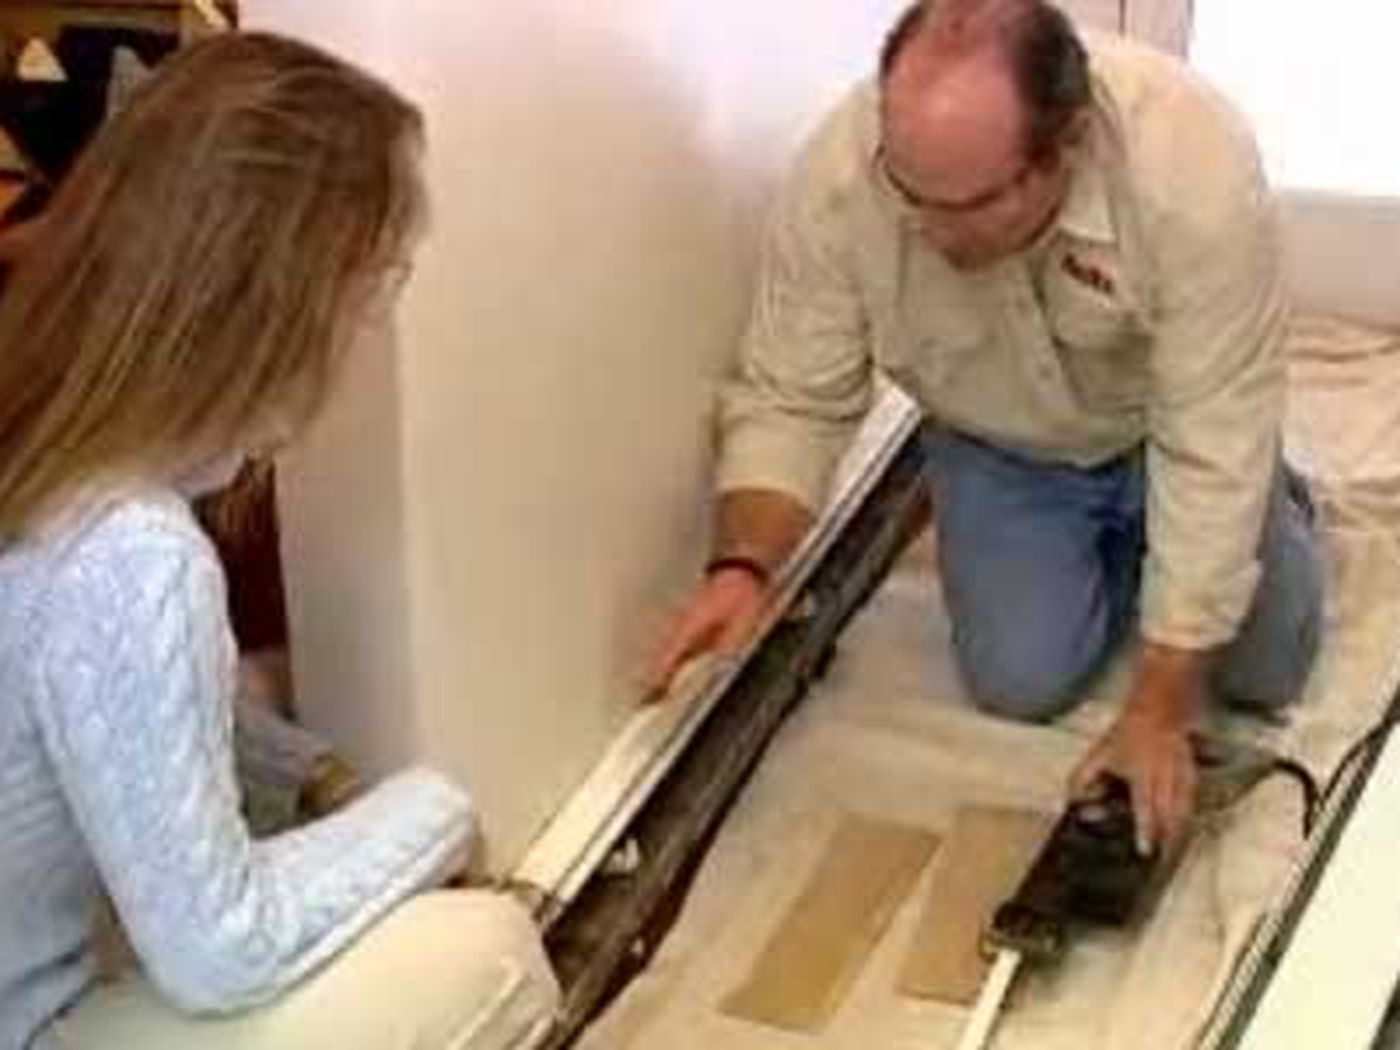 How To Replace Baseboard Heater Covers Safely This Old House